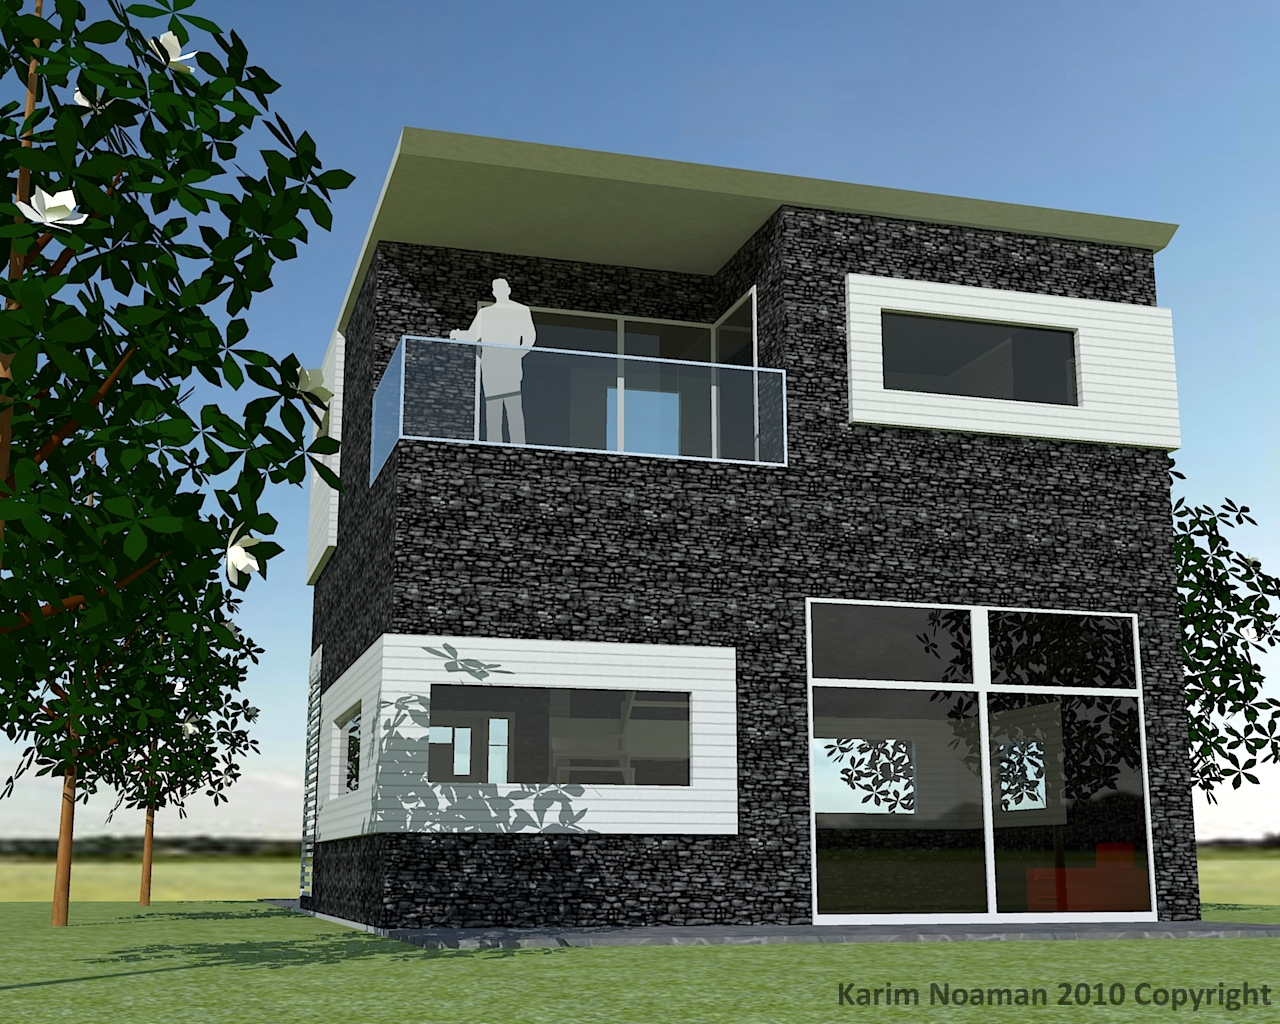 Simple modern house design by knoaman on deviantart Simple modern house designs and floor plans